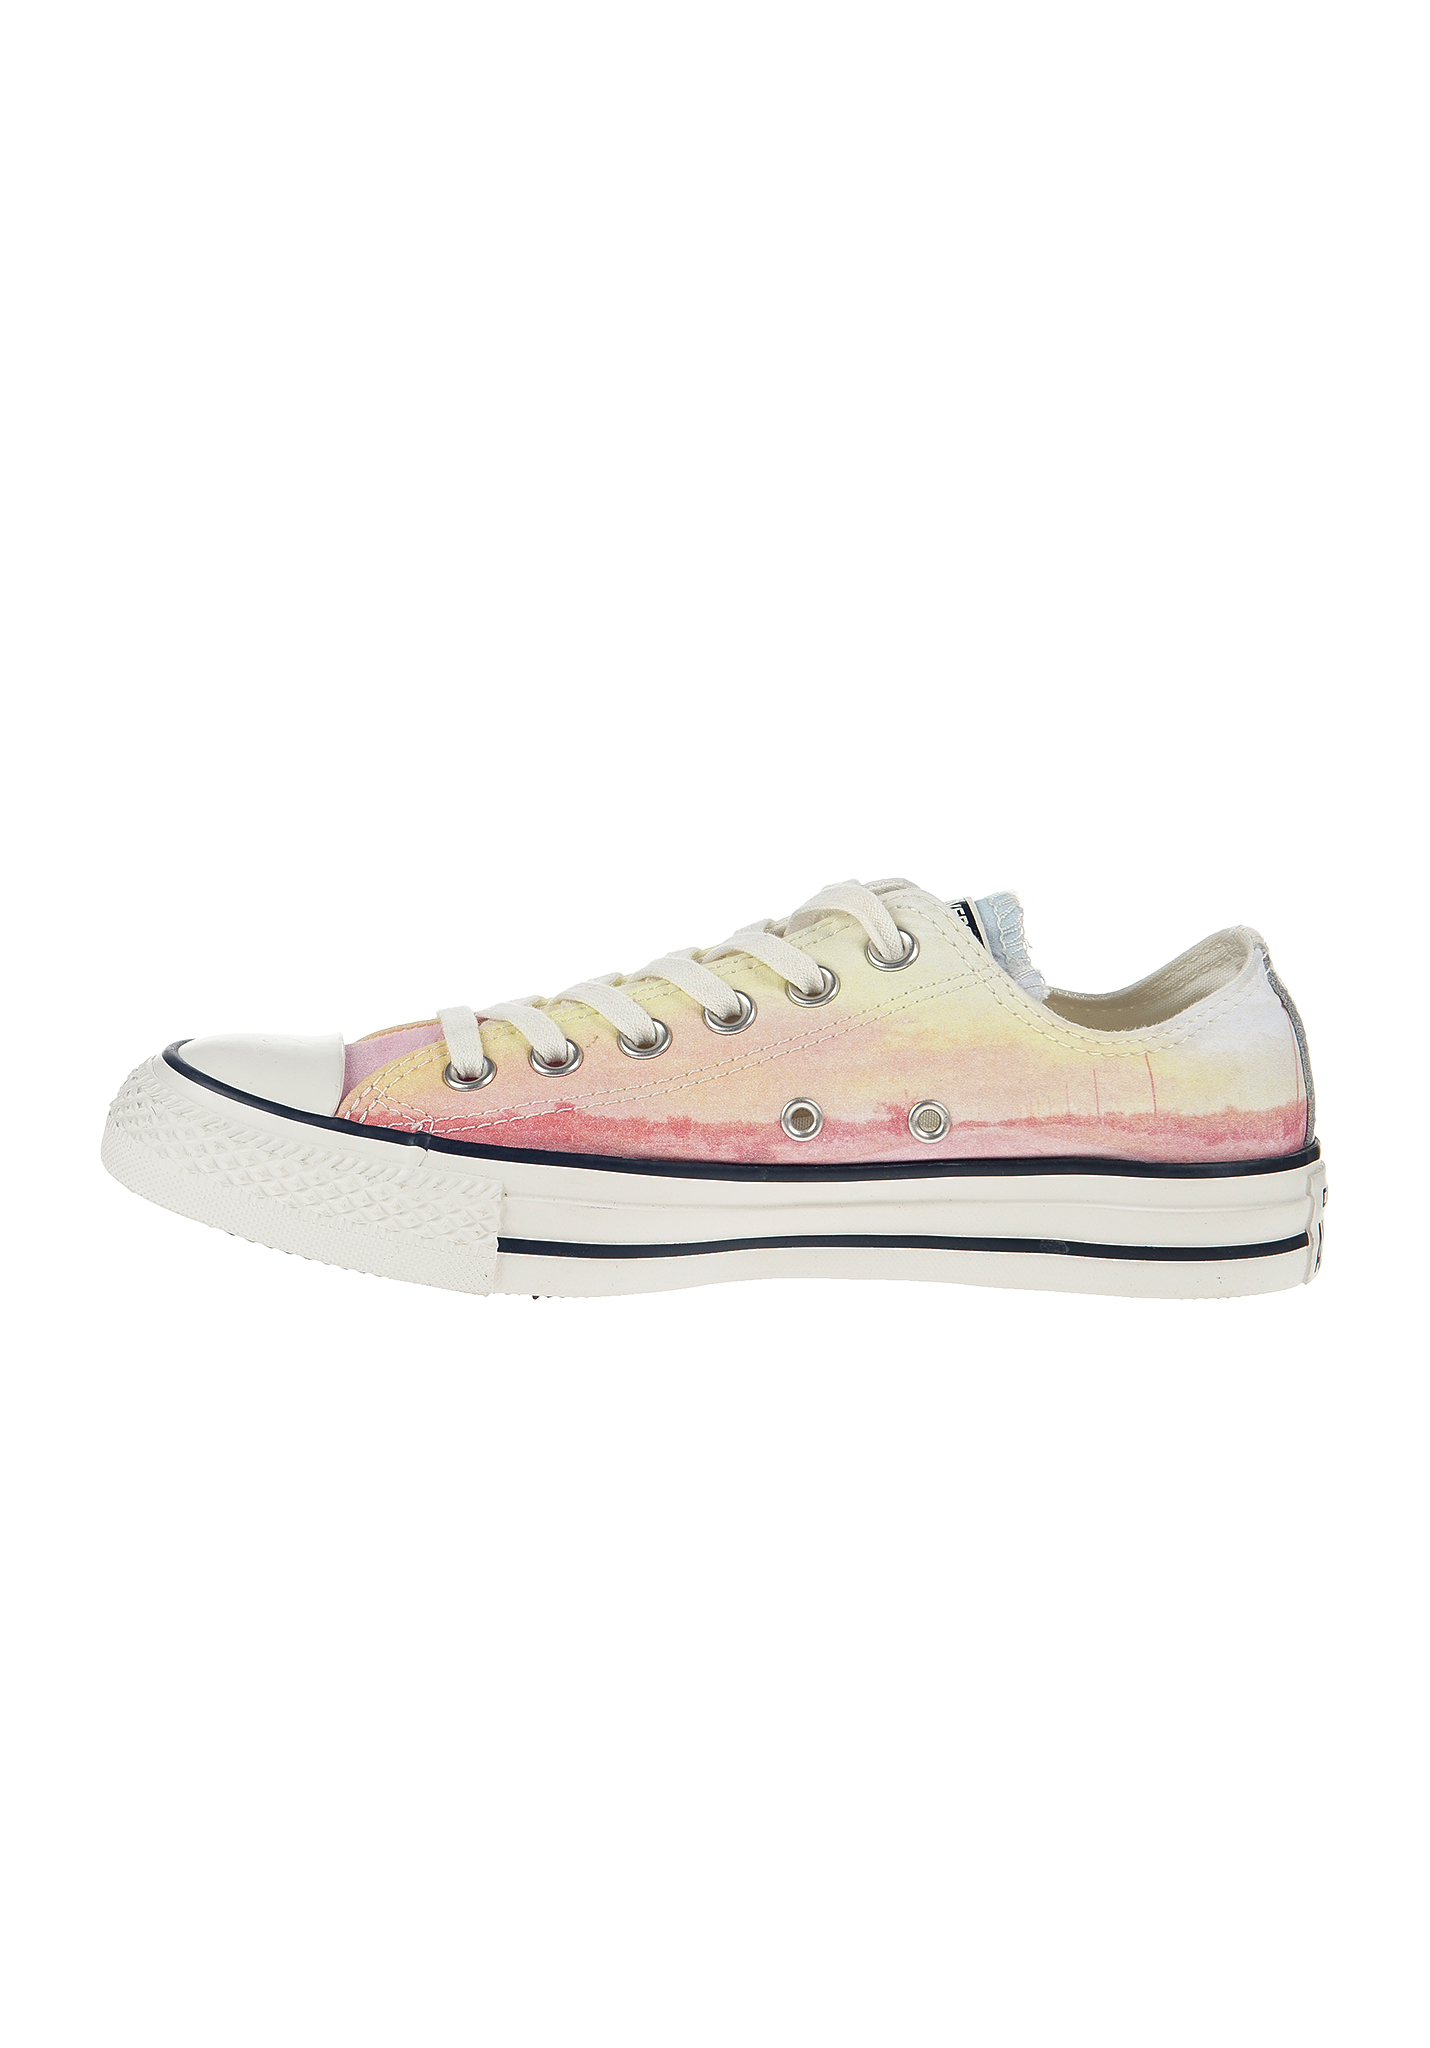 converse chuck taylor all star ox damen sneaker turnschuhe freizeit schuhe ebay. Black Bedroom Furniture Sets. Home Design Ideas